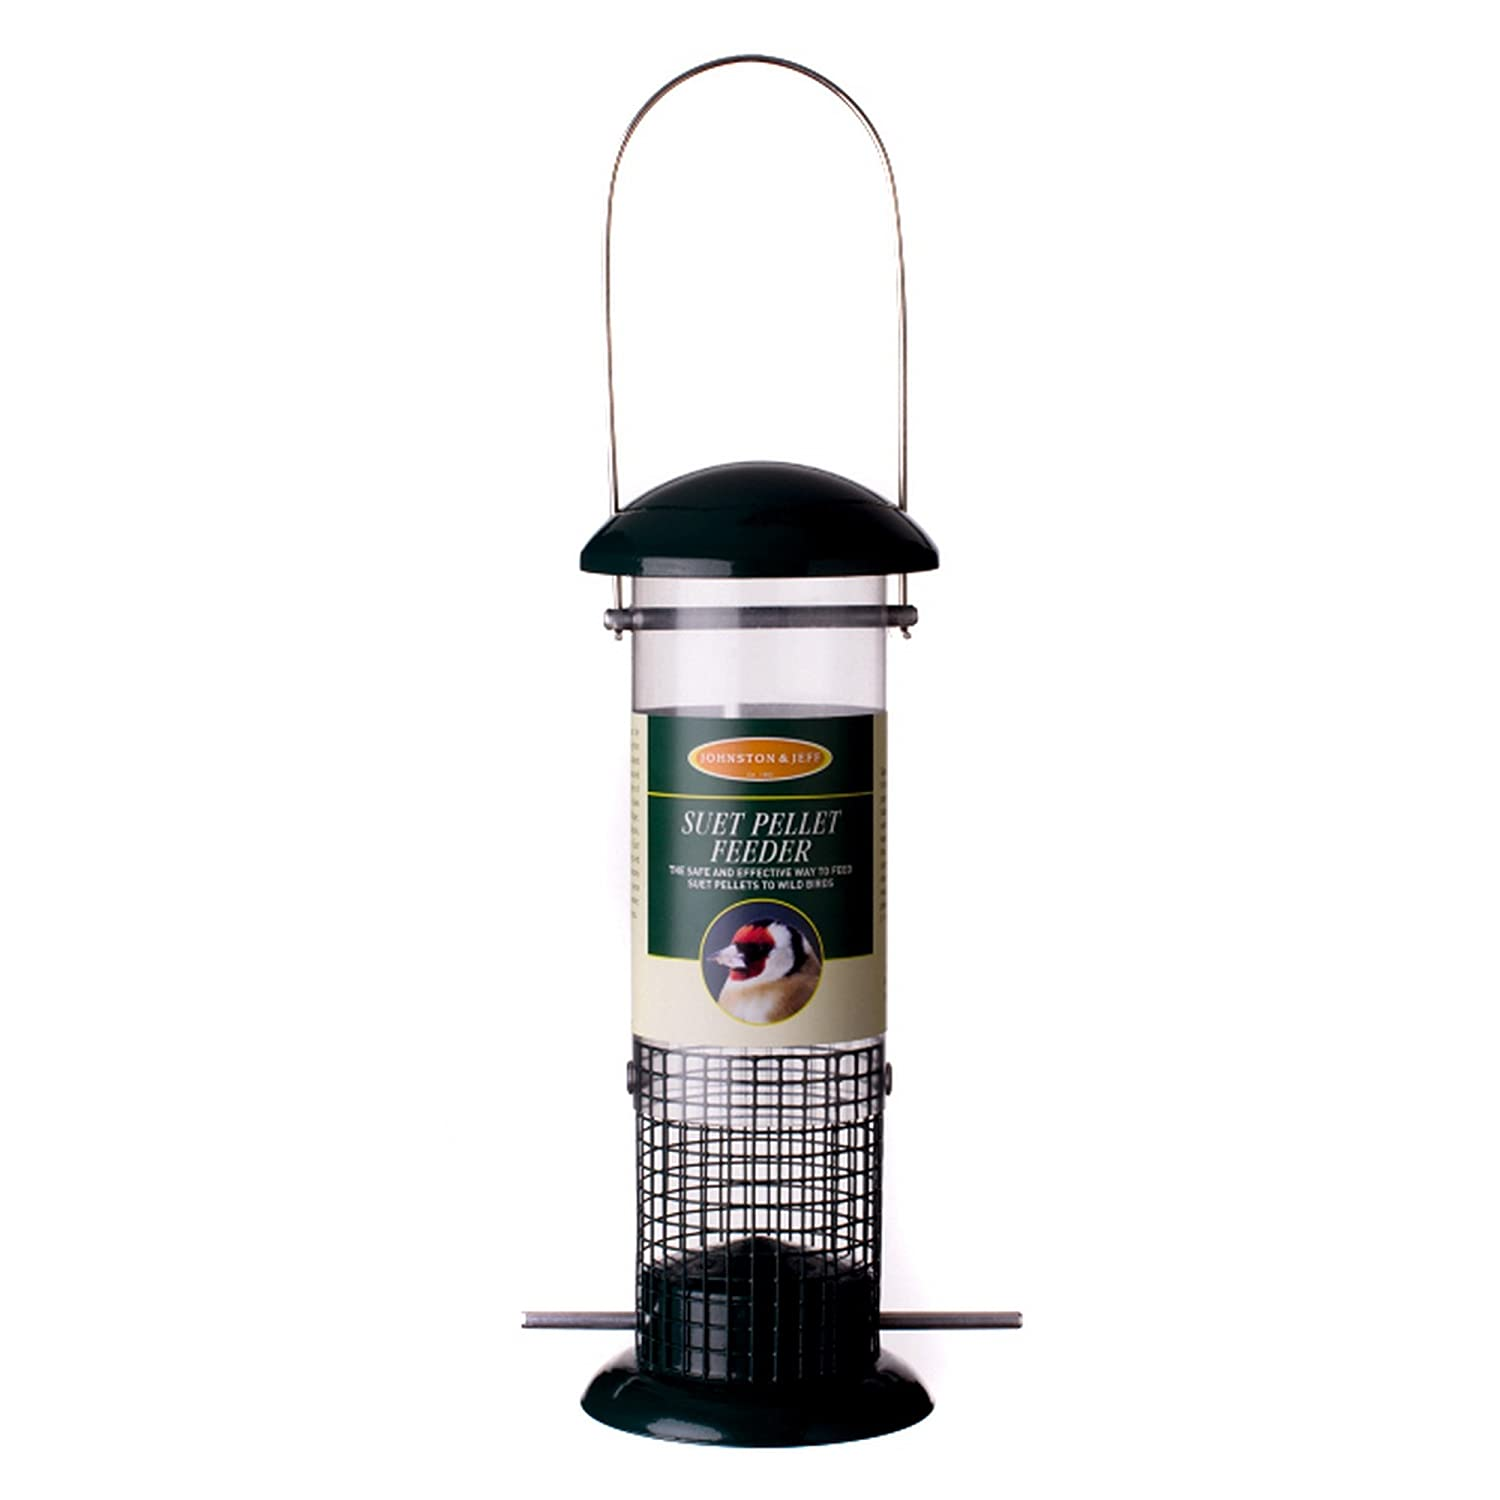 Johnston & Jeff Wild Bird Suet Pellet Feeder F007